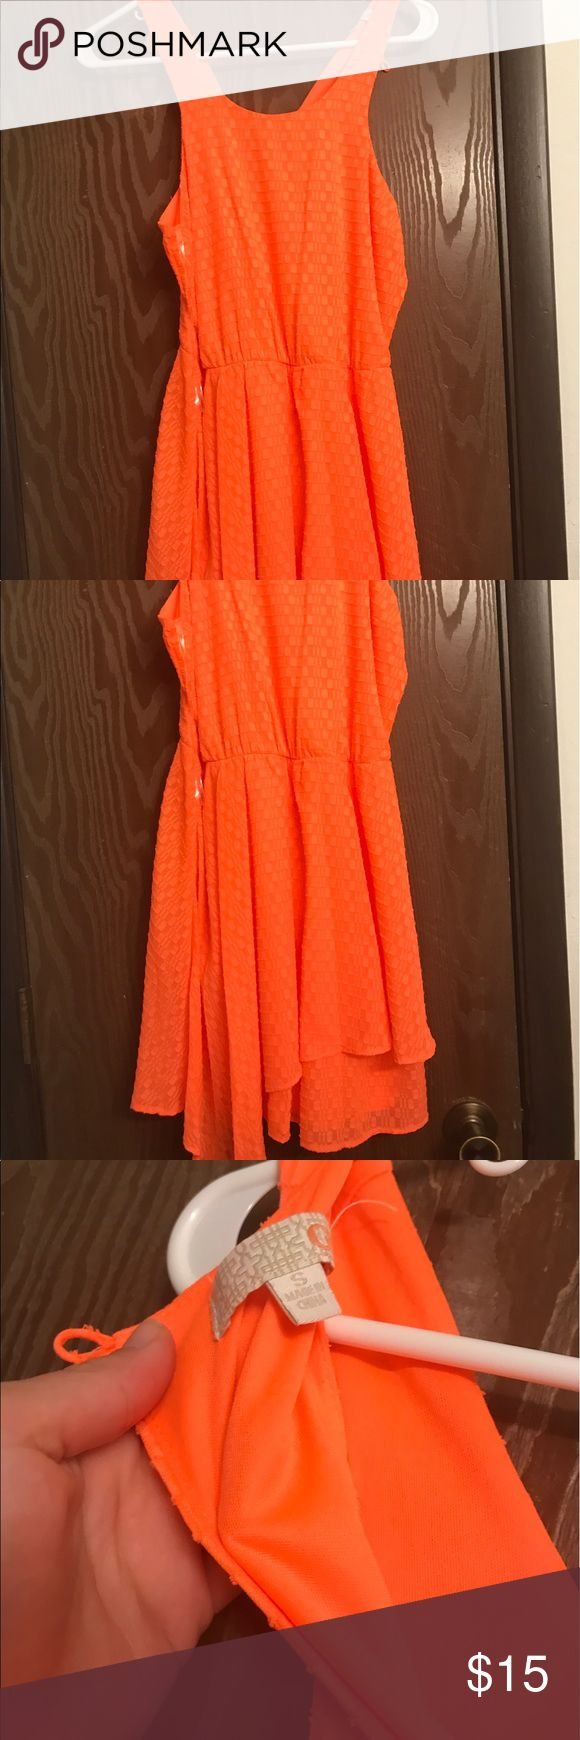 Bright orange dress (worn once) bright orange dress with round front neckline and vneck in back  - perfect for summer (worn once) Dresses Midi